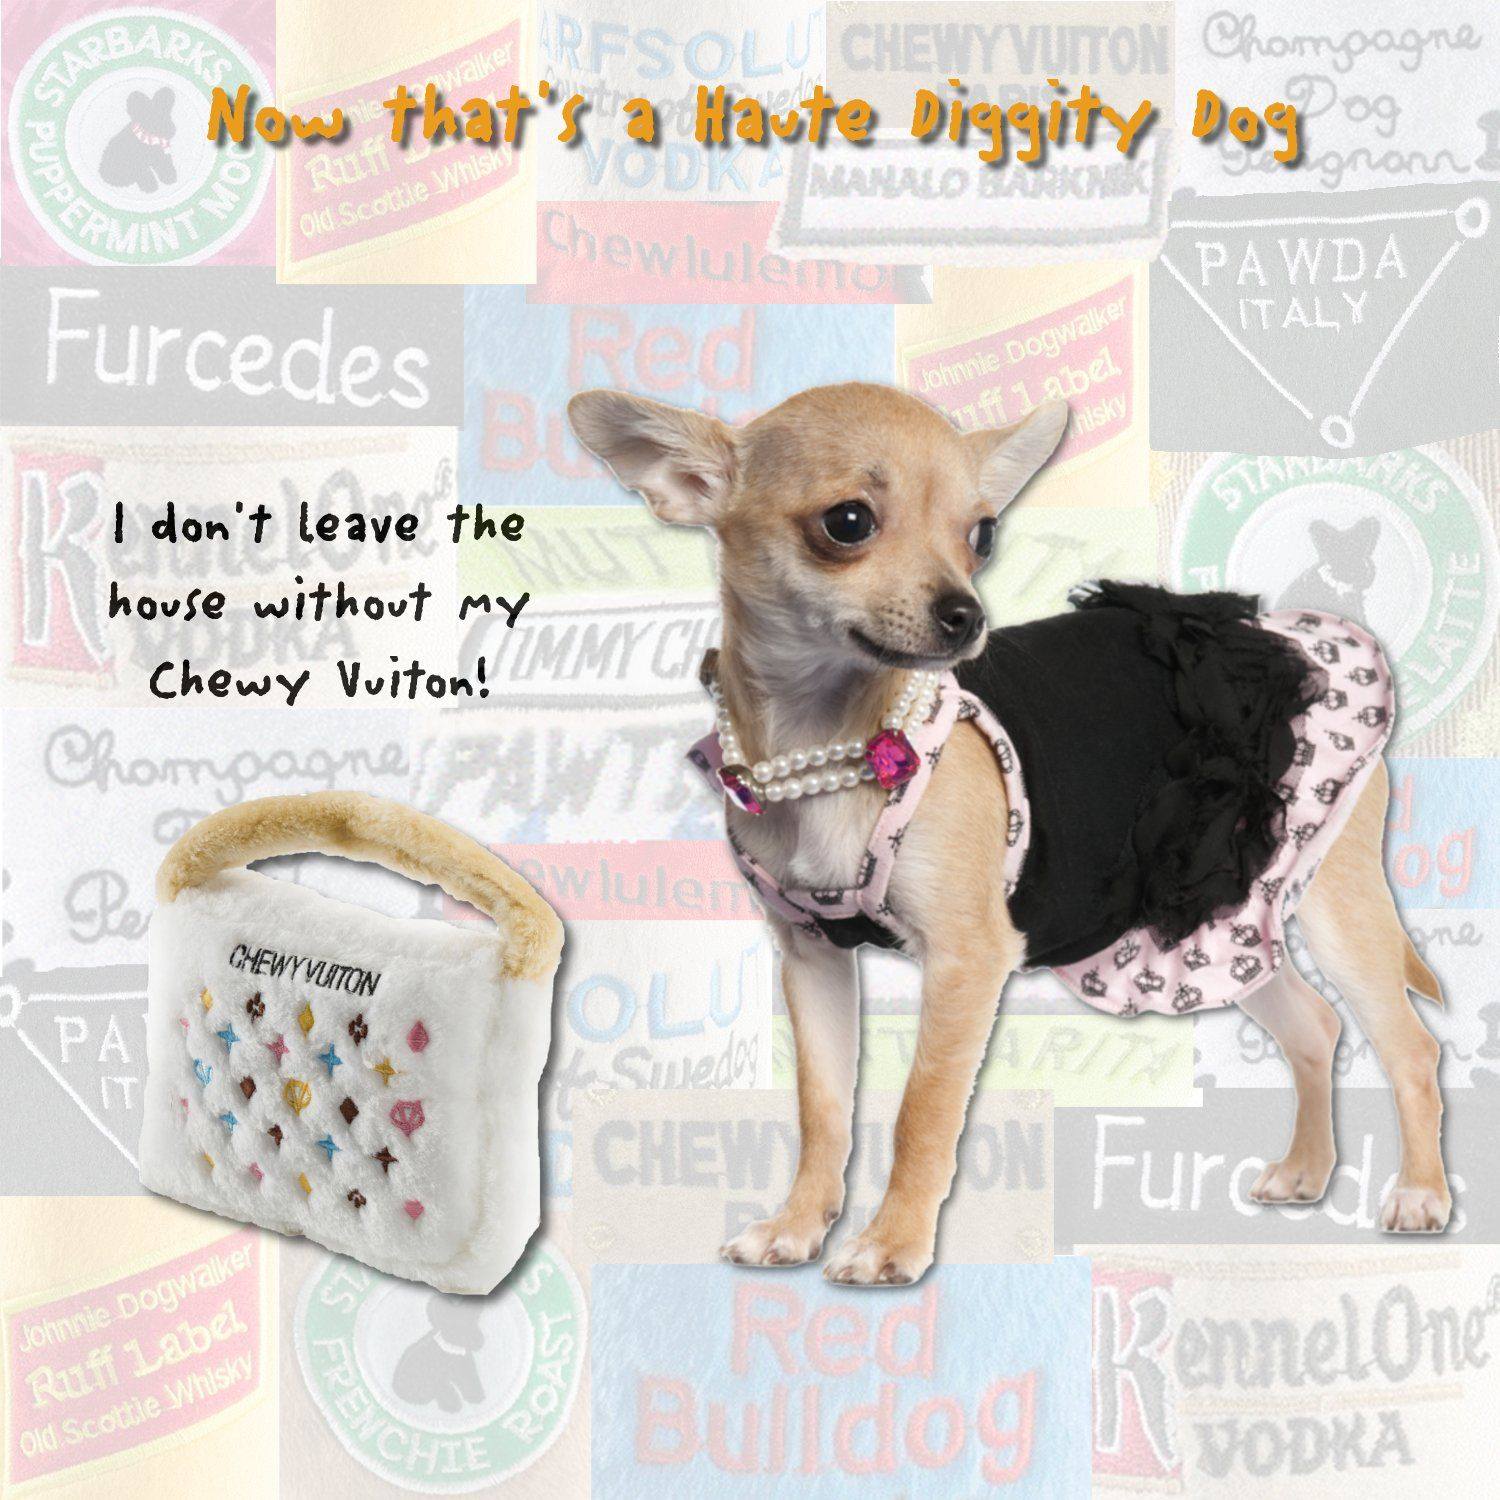 Haute Diggity Dog Fashion Hound Collection Unique Squeaky Plush Dog Toys A Pawrses And Pawbags Chewy Vuiton White Large You Can Dog Toys Dogs Scottie